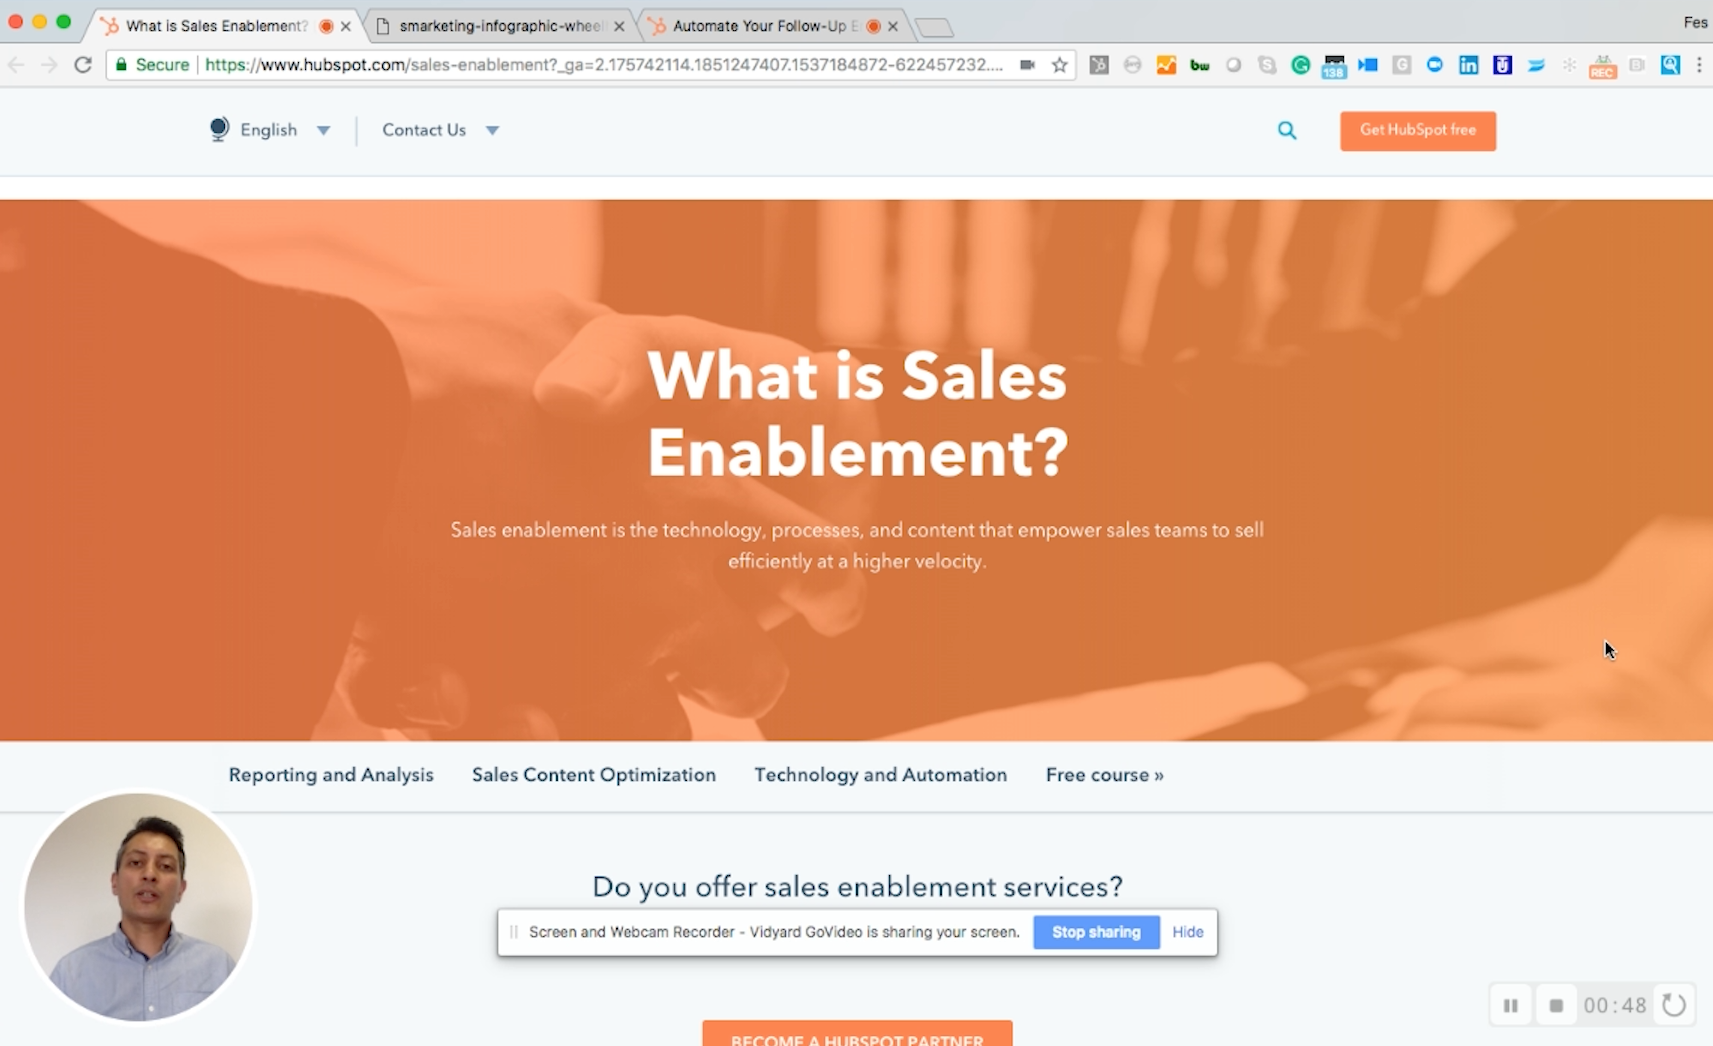 Tips For Sales Enablement and Process Design